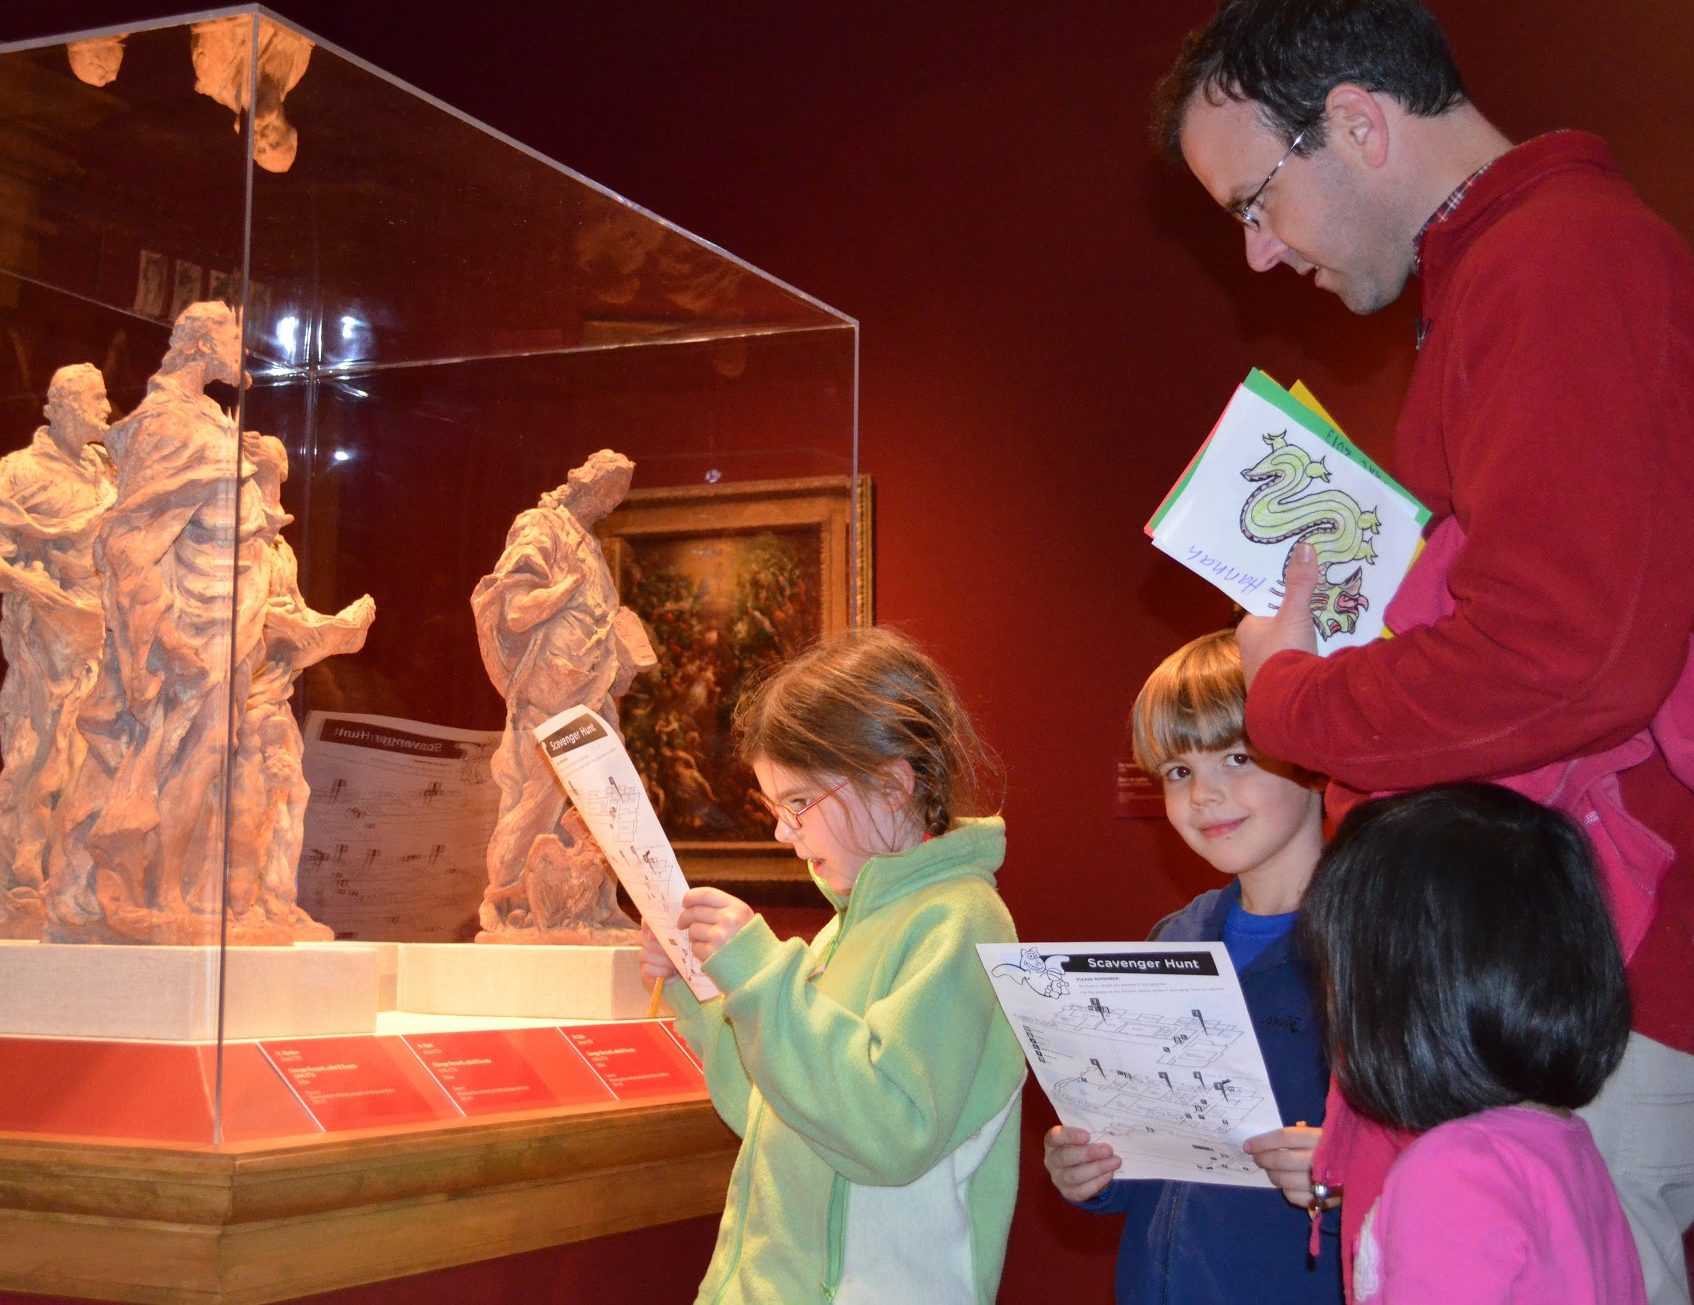 Family viewing sculptures in the gallery.